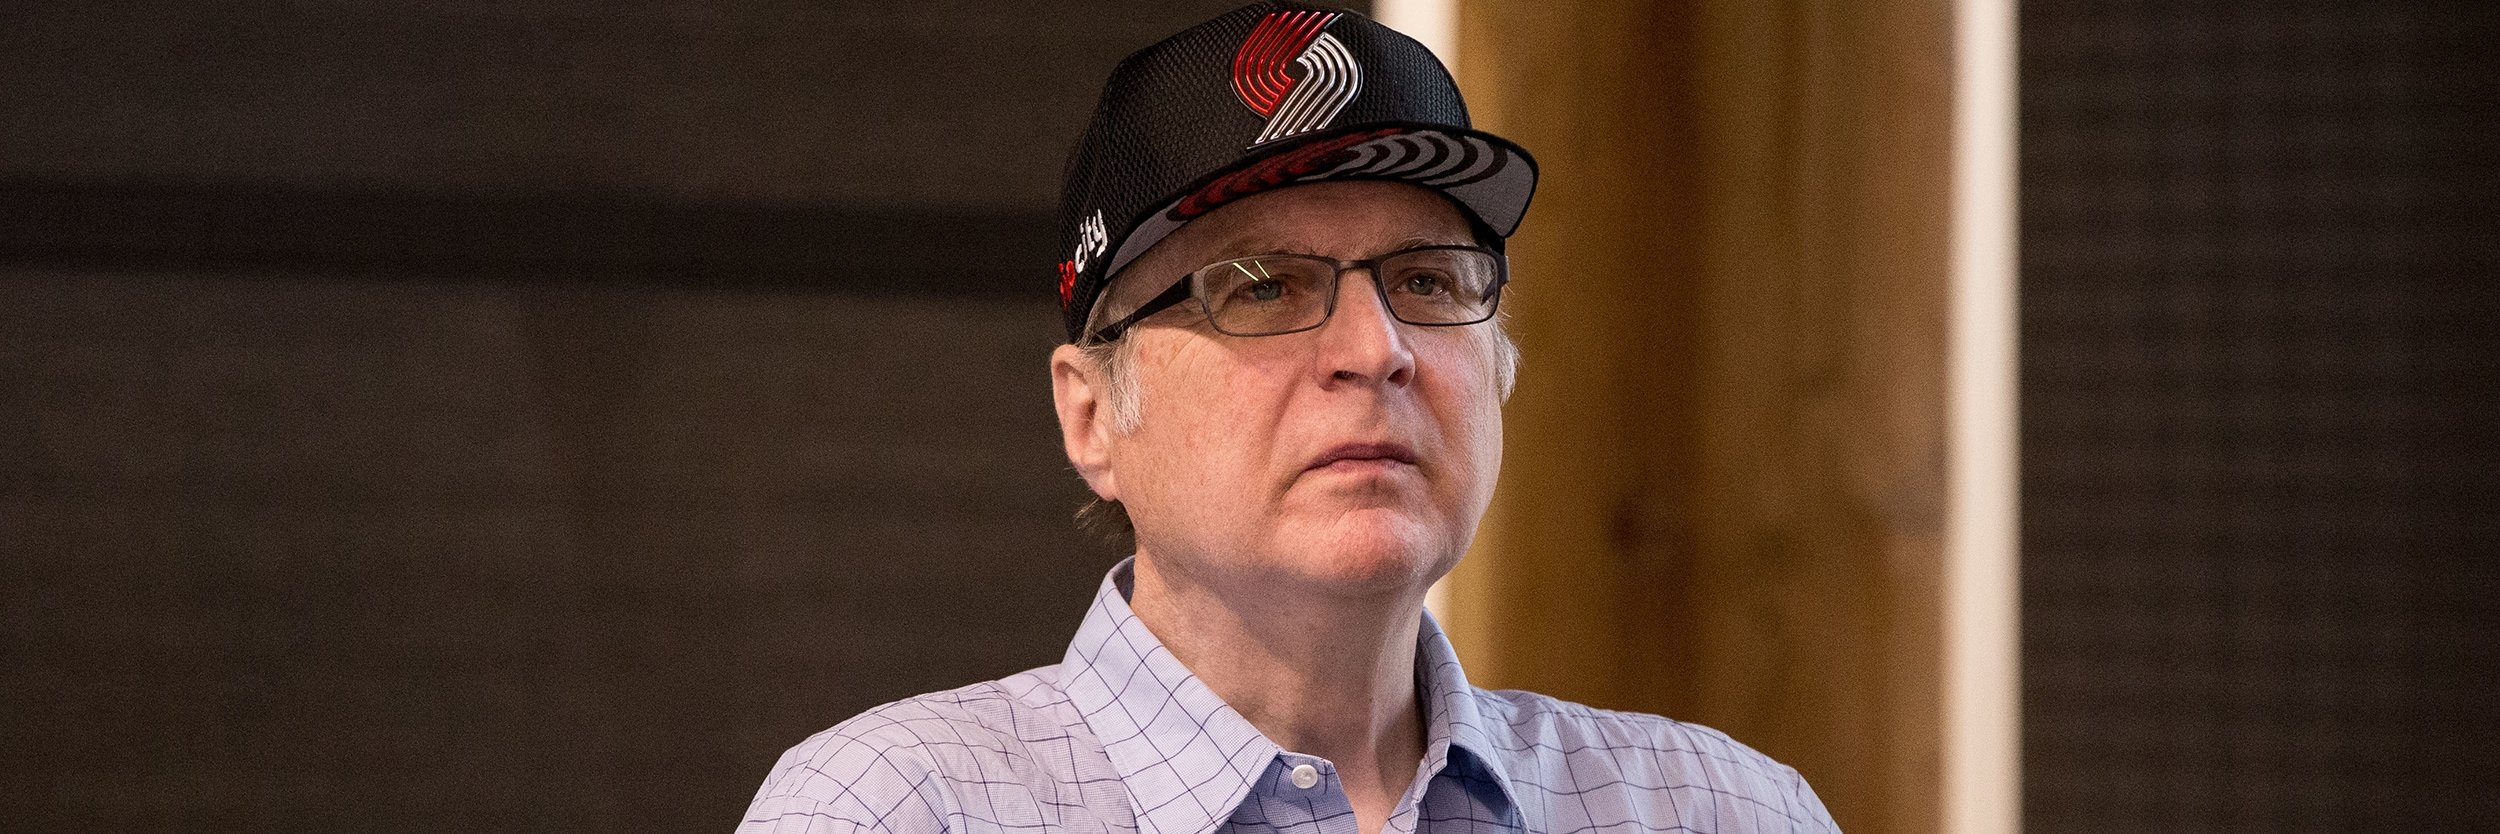 Trail Blazers Front Office Players Remember Team Owner Paul Allen